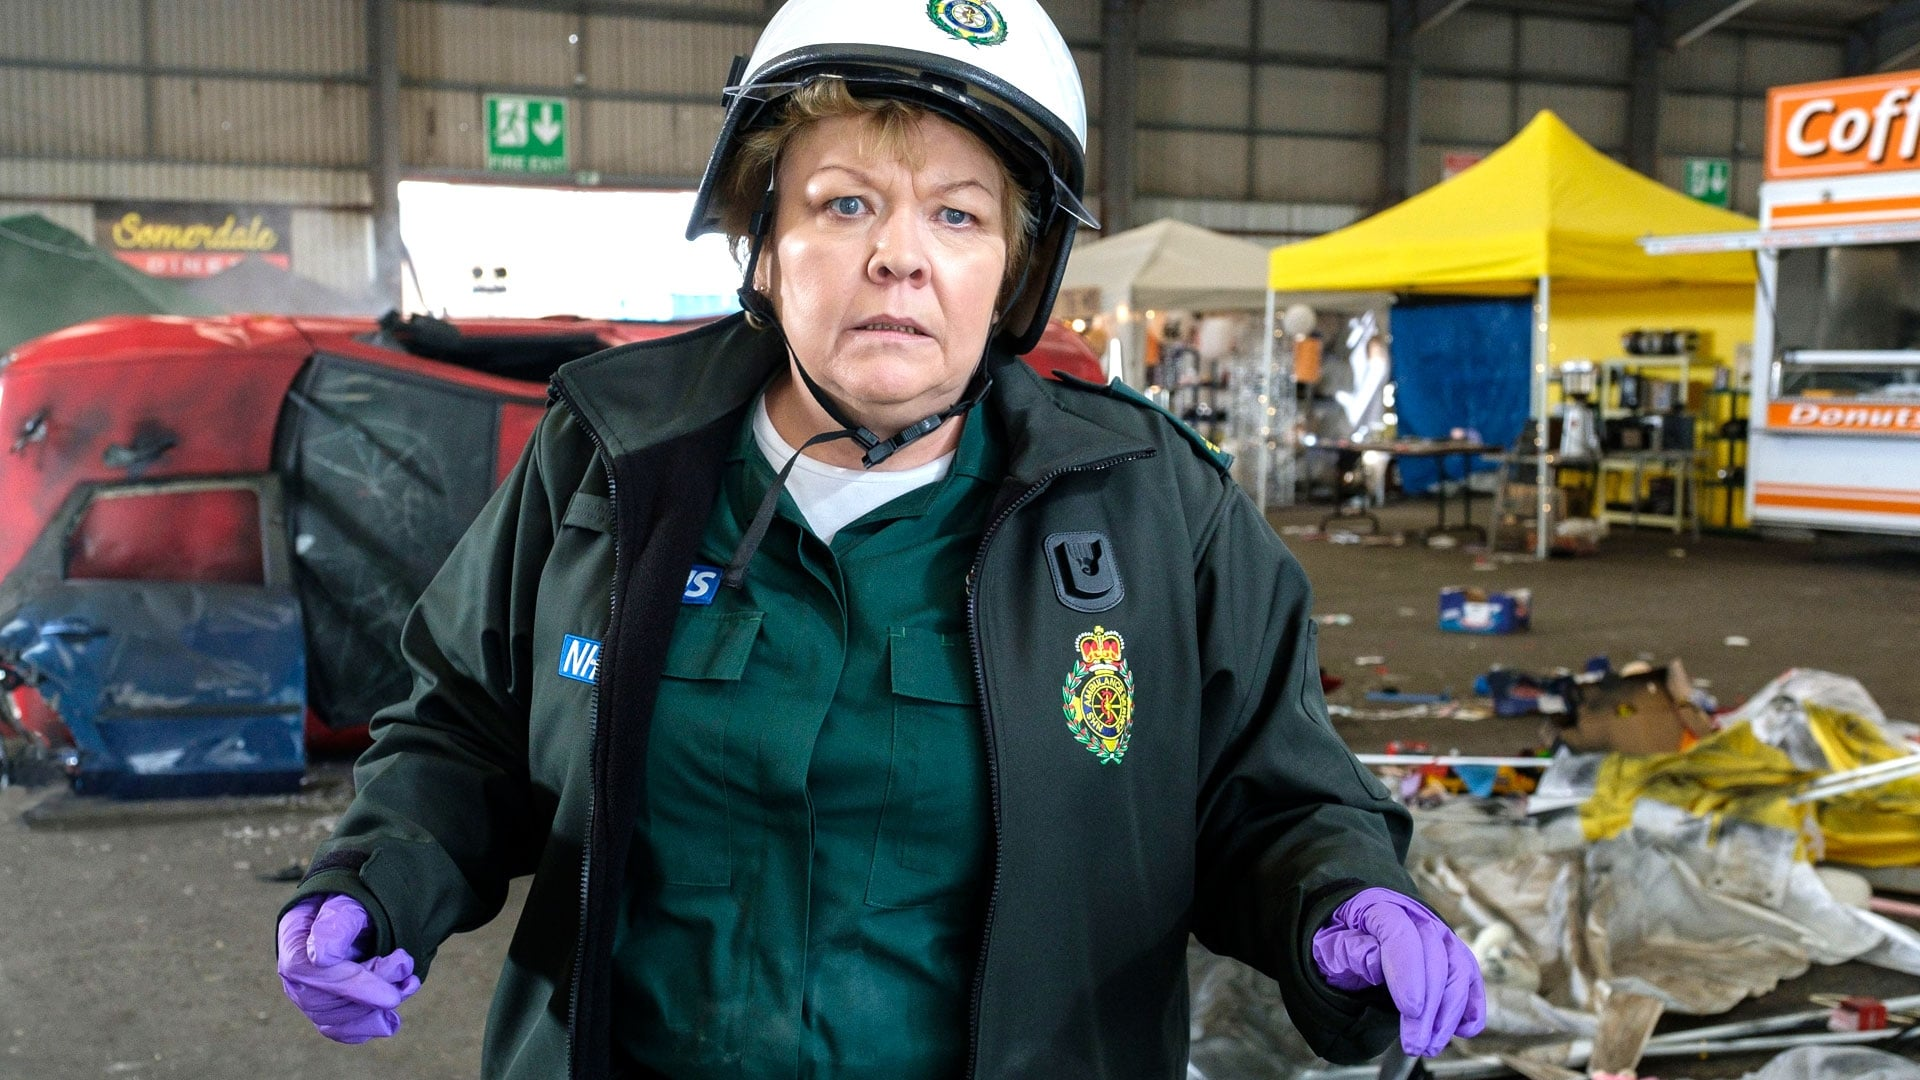 Casualty Season 34 :Episode 1  Episode 1